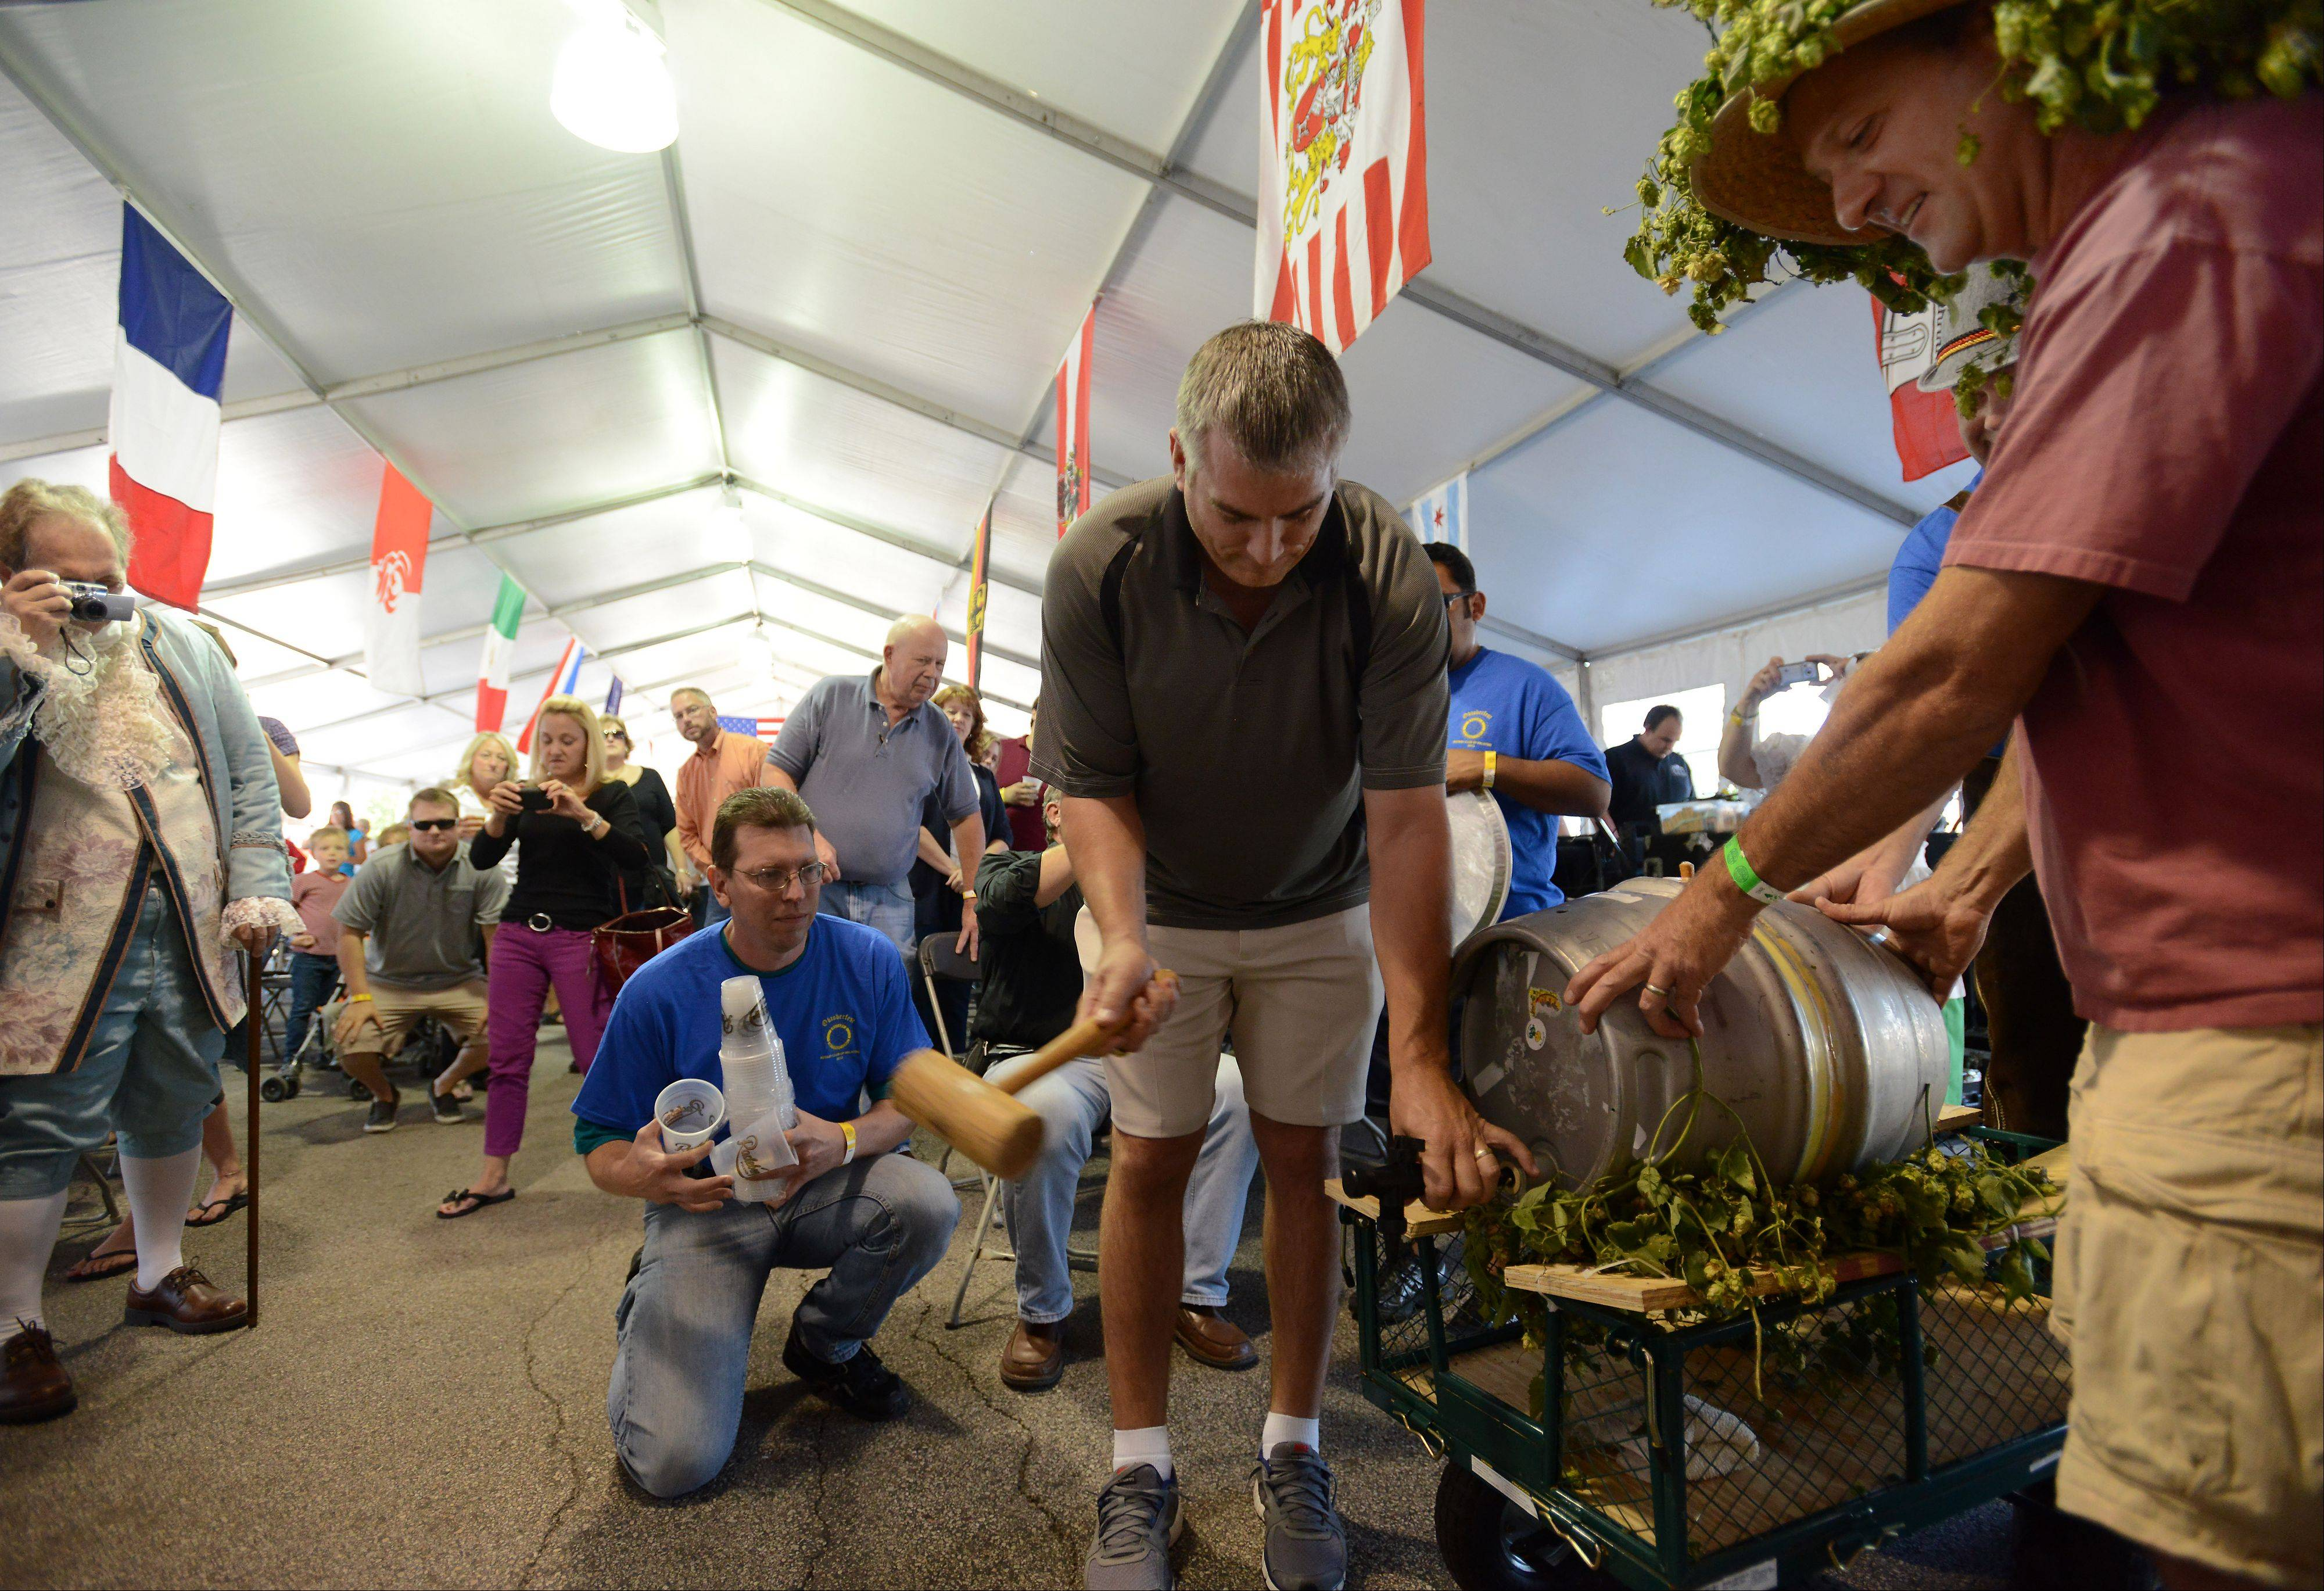 Palatine Mayor Jim Schwantz taps the firkin, a beer keg, to start off Oktoberfest in Palatine on Friday.